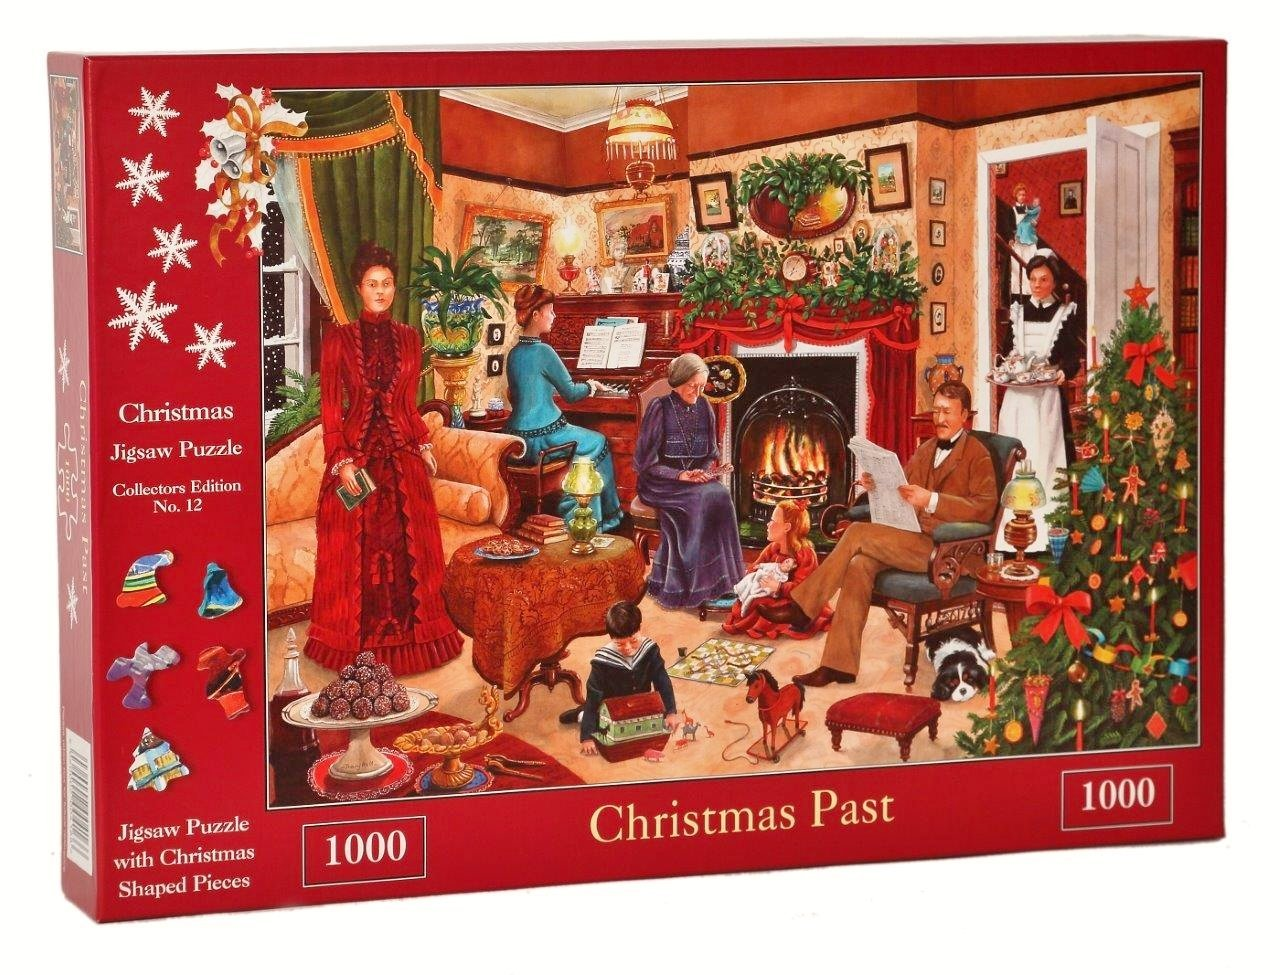 Christmas Past, Limited Edition, No12, 1000pc